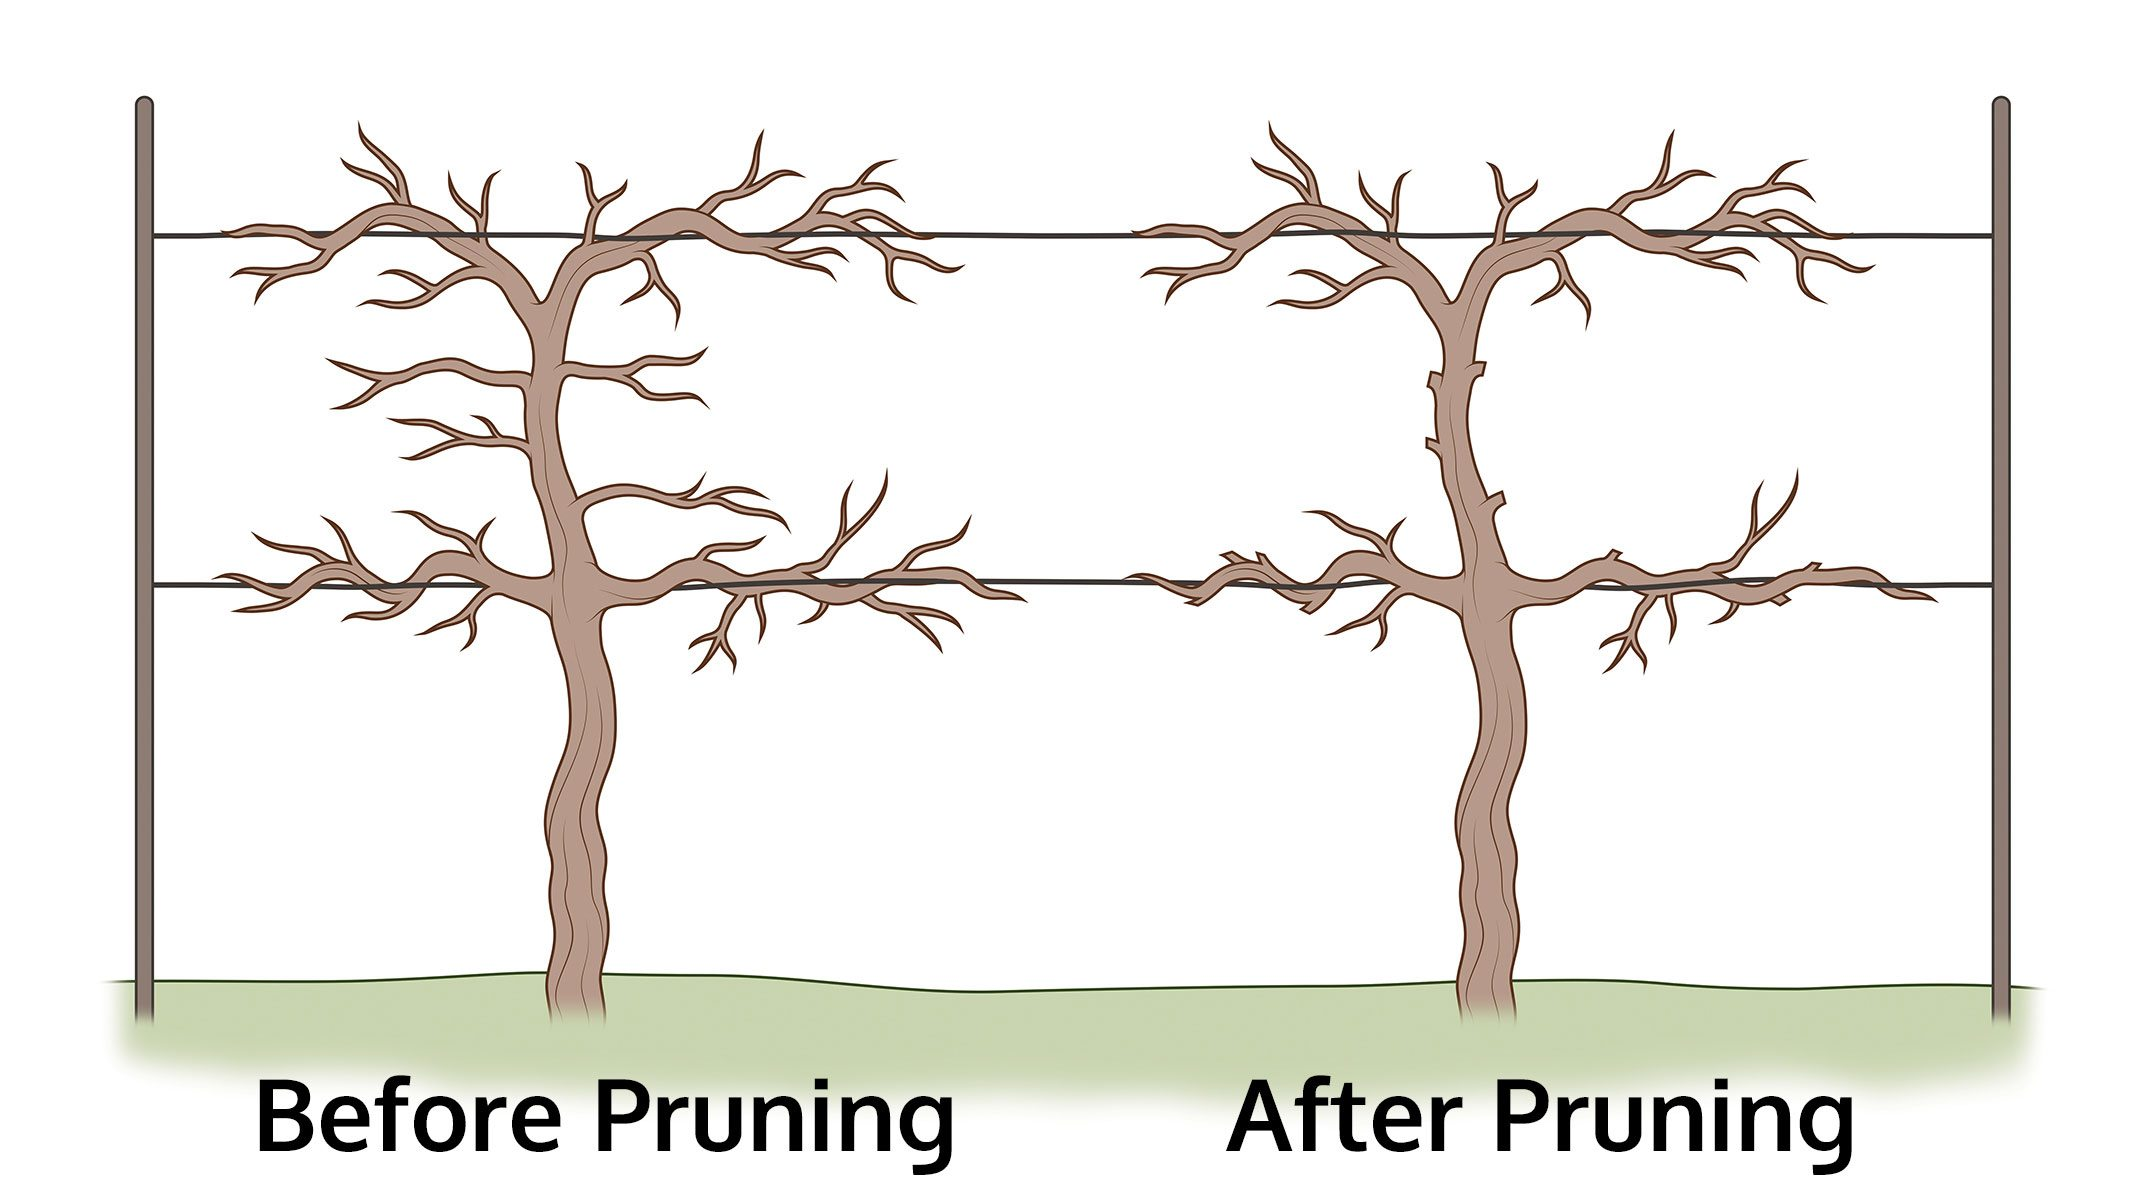 How to prune grapes how to trim a grapevine - How to prune and train the grapevine ...